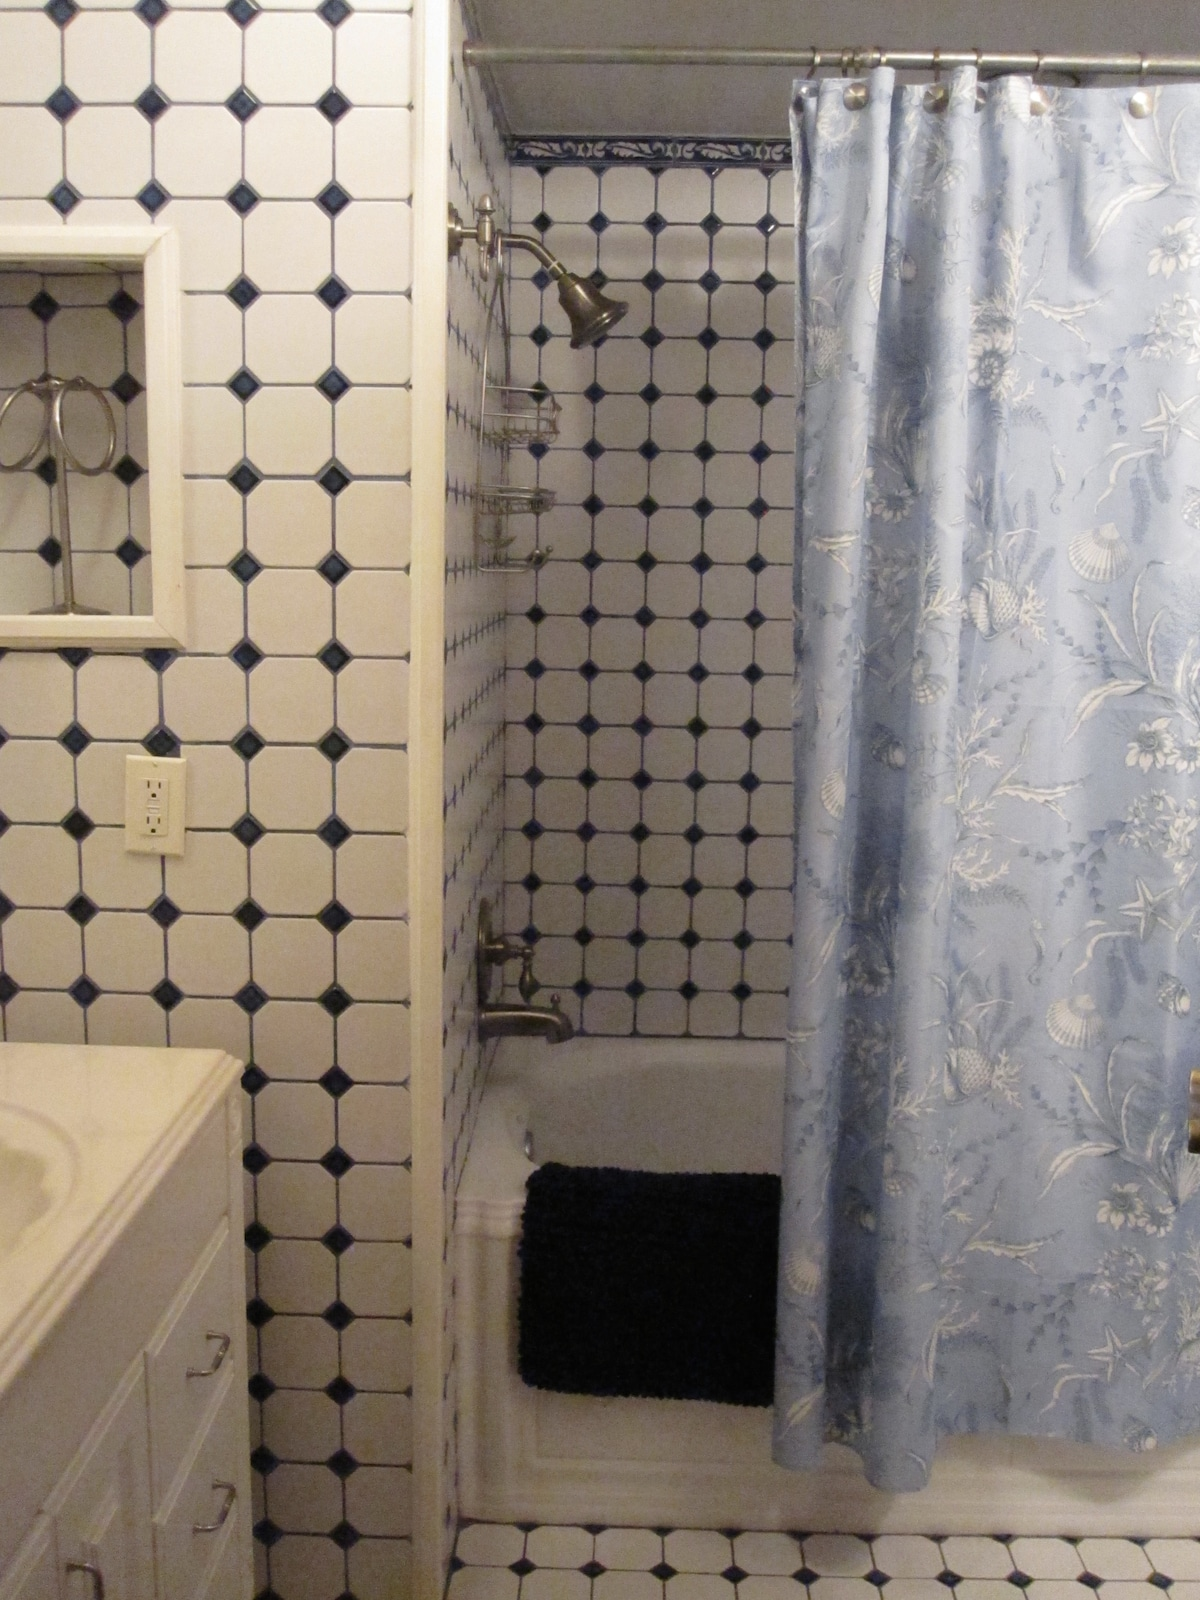 The private bathroom adjacent to the bedroom.